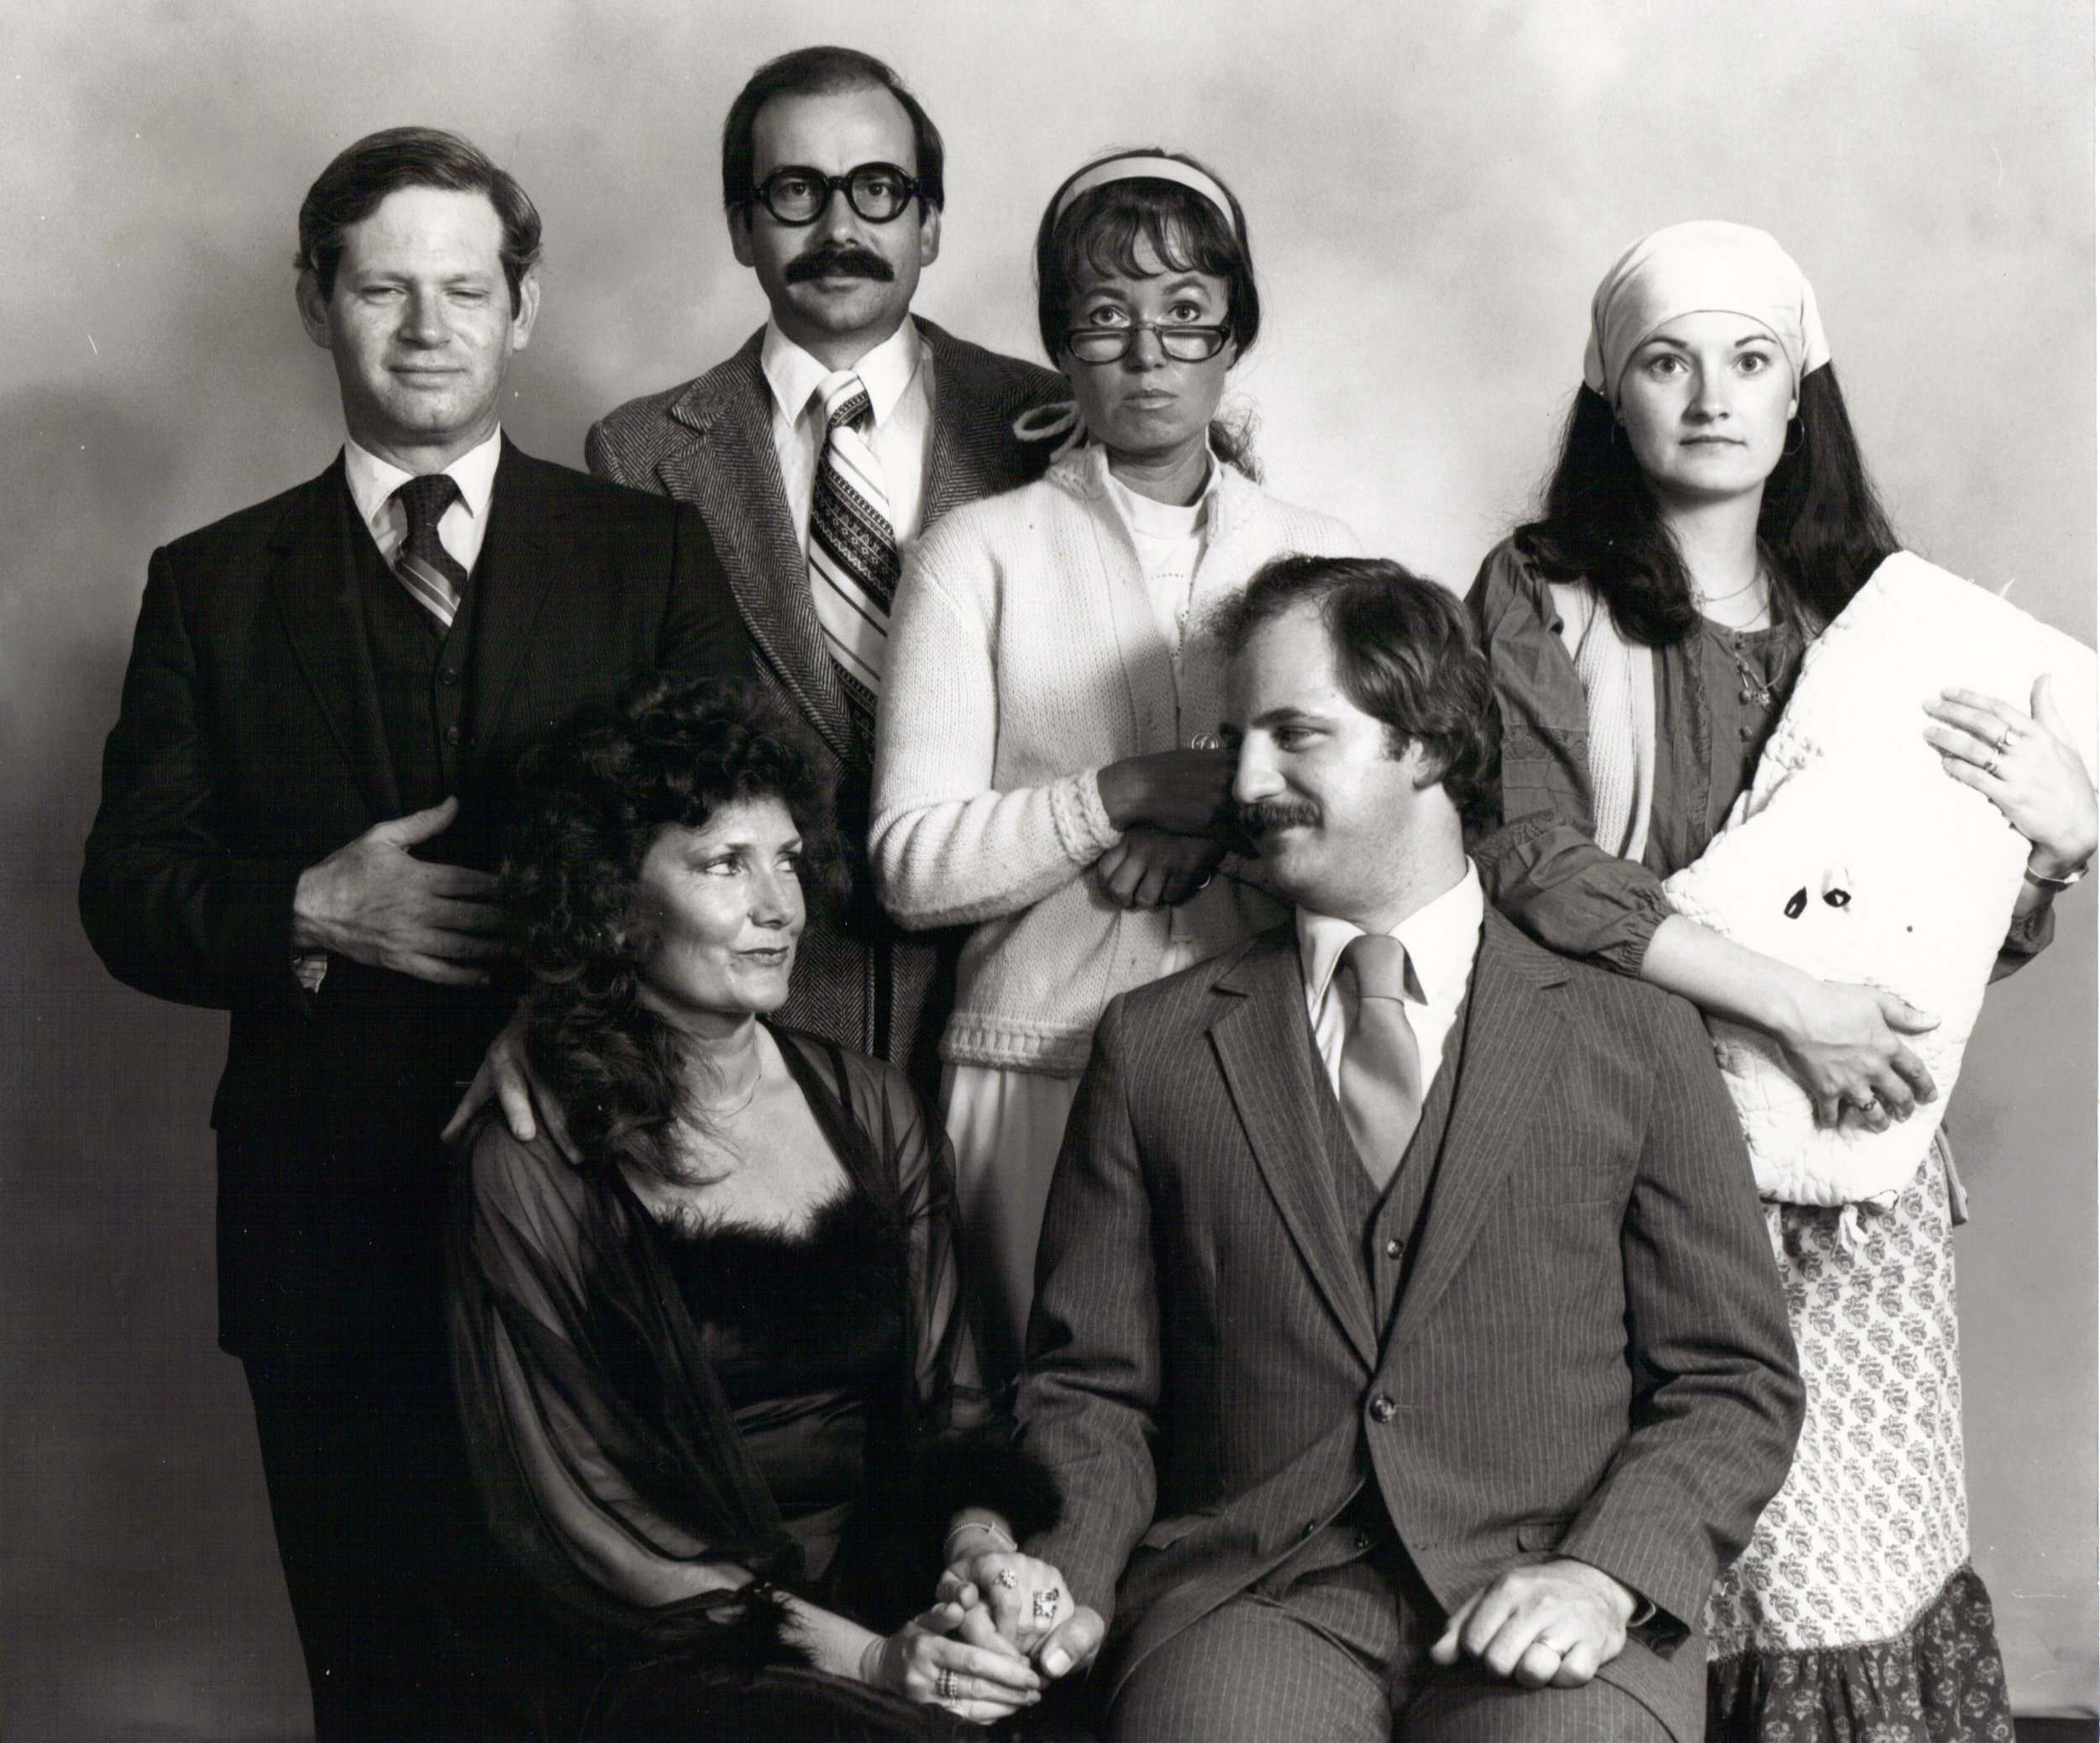 """The Cornville Players ca. 1985 """"How the Other Half Loves""""  Back Row: Bruce Hertz, Jeffrey Quinn, M.J. Clifford, Linda Ewing  Front Row: Jane Arthur, Tim Forsman"""